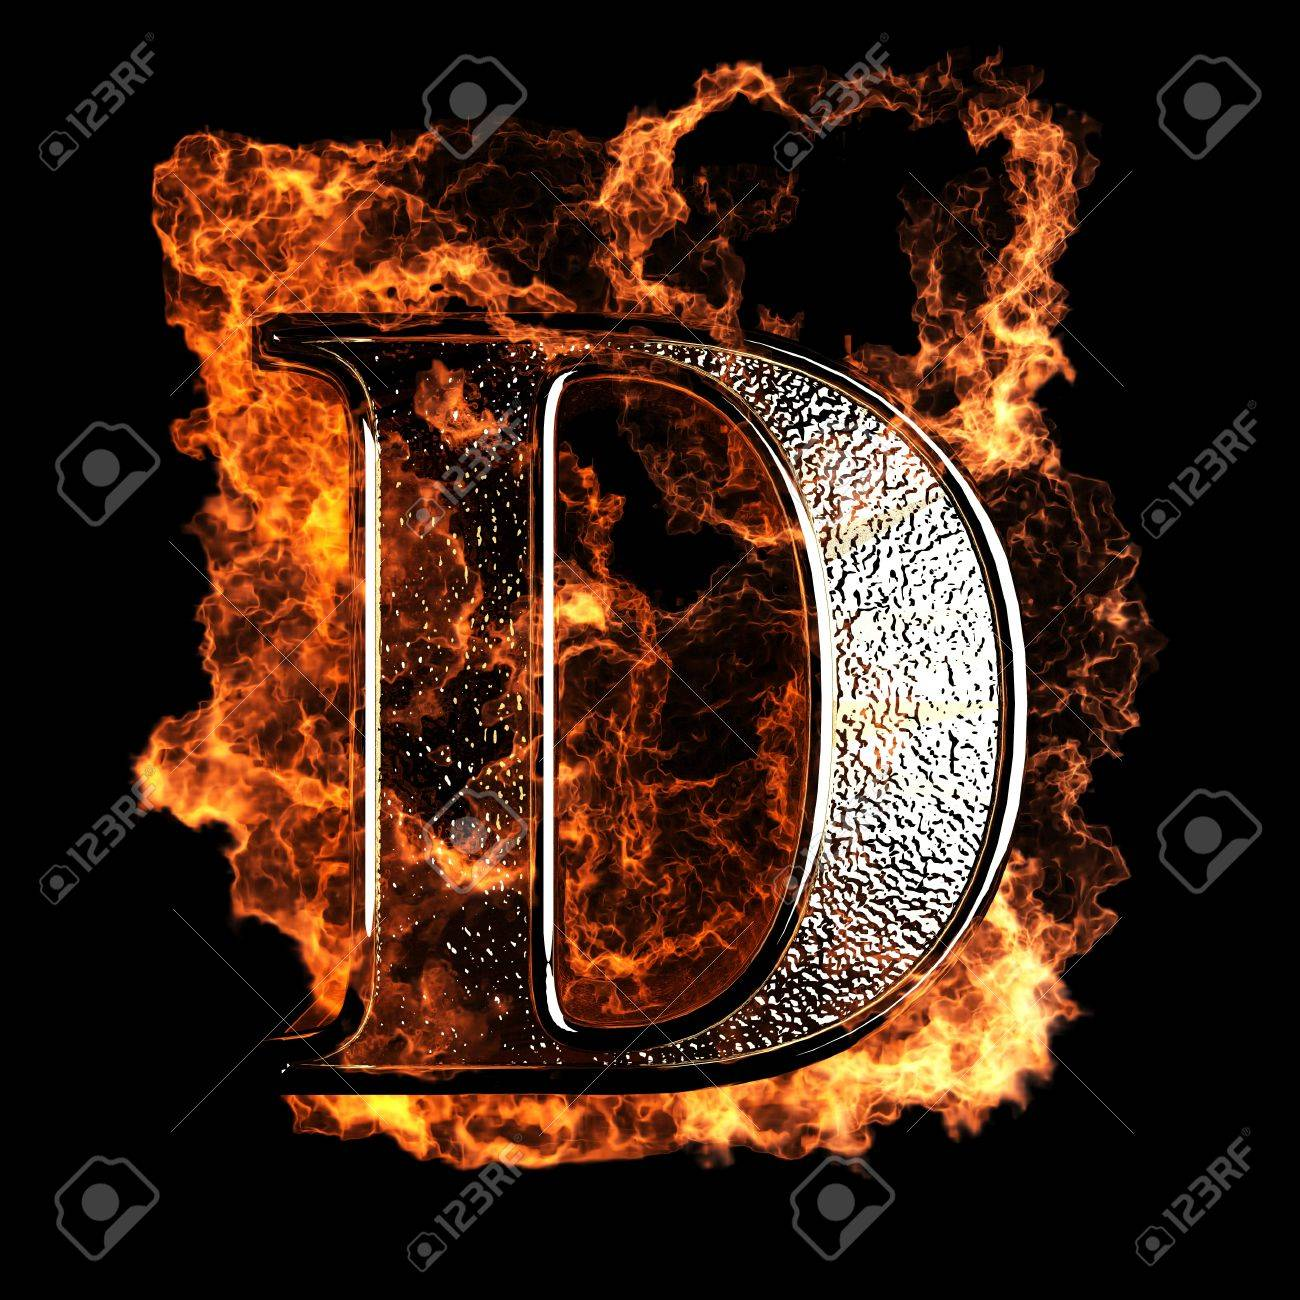 Letter d stock photos royalty free letter d images burning letter made in 3d graphics thecheapjerseys Image collections